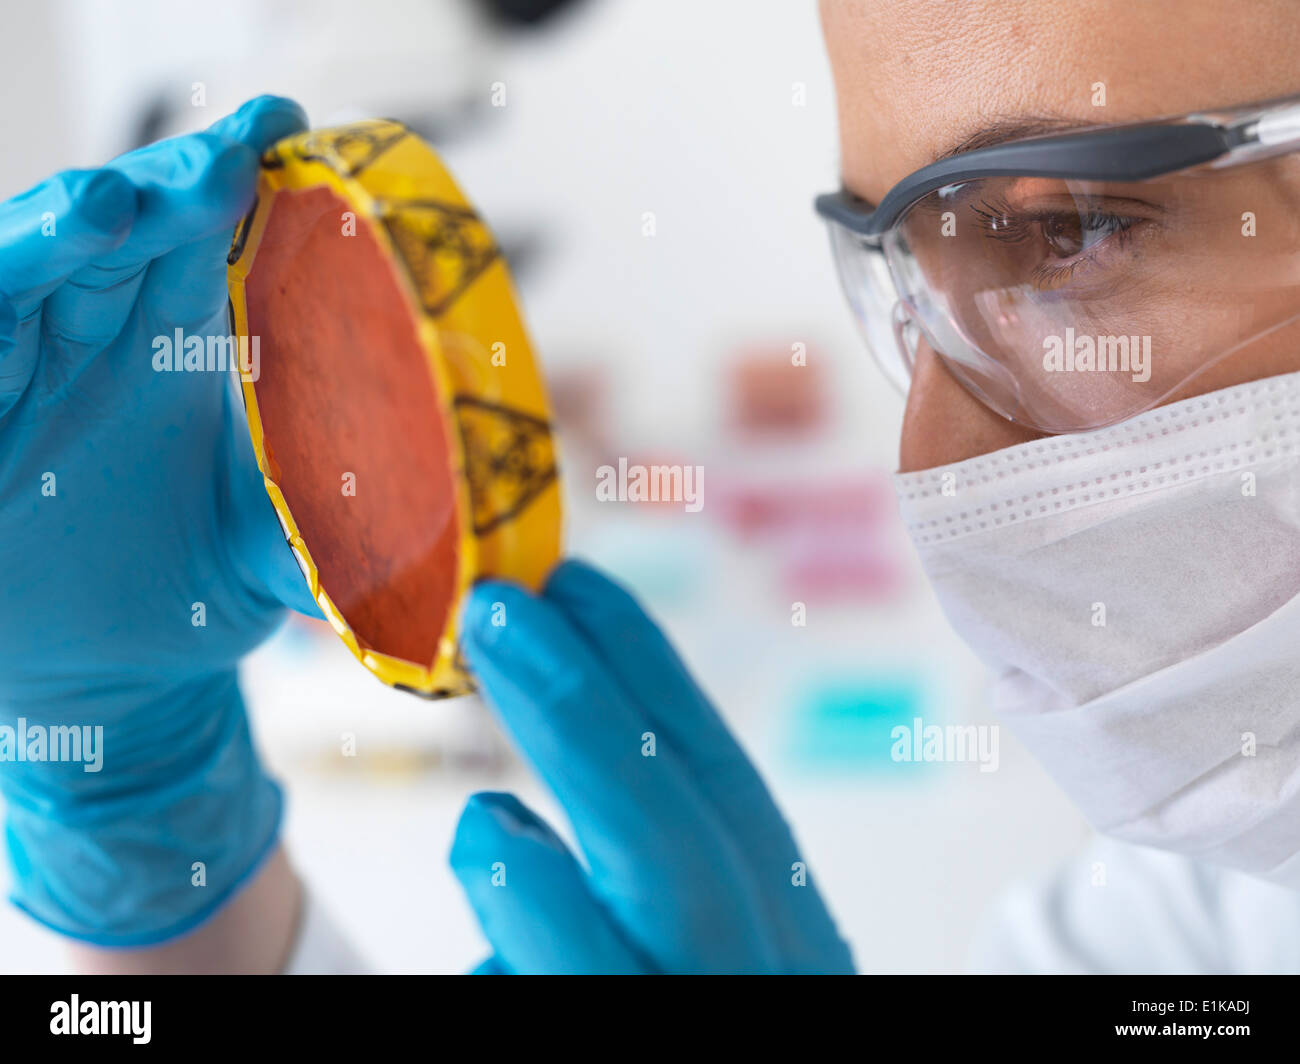 Female scientist holding petri dish with hazardous biological cultures. - Stock Image